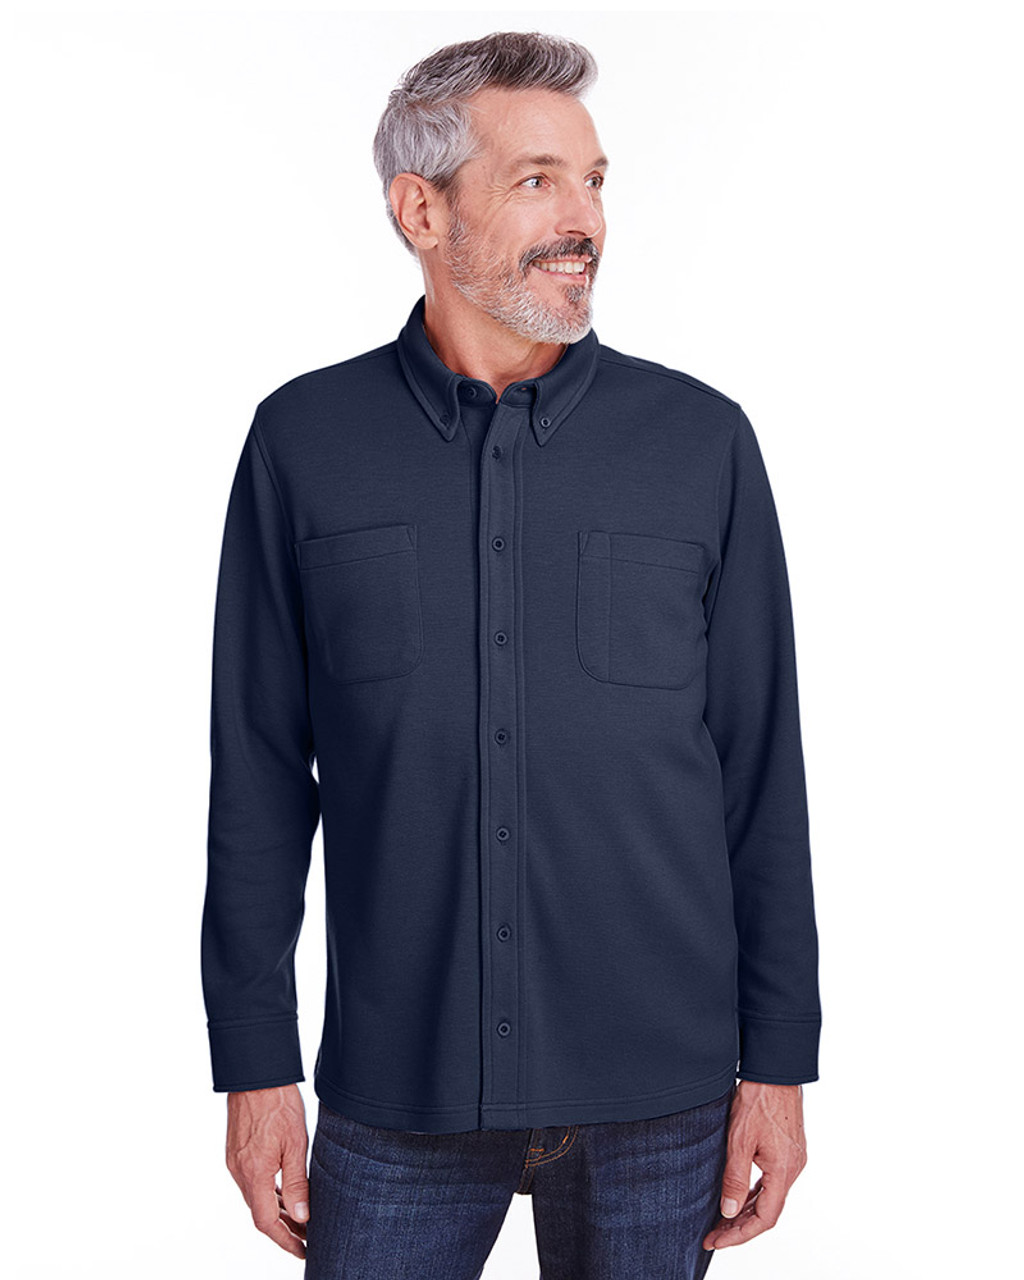 Dark Navy - M708 Harriton Adult StainBloc™ Pique Fleece Shirt-Jacket | Blankclothing.ca